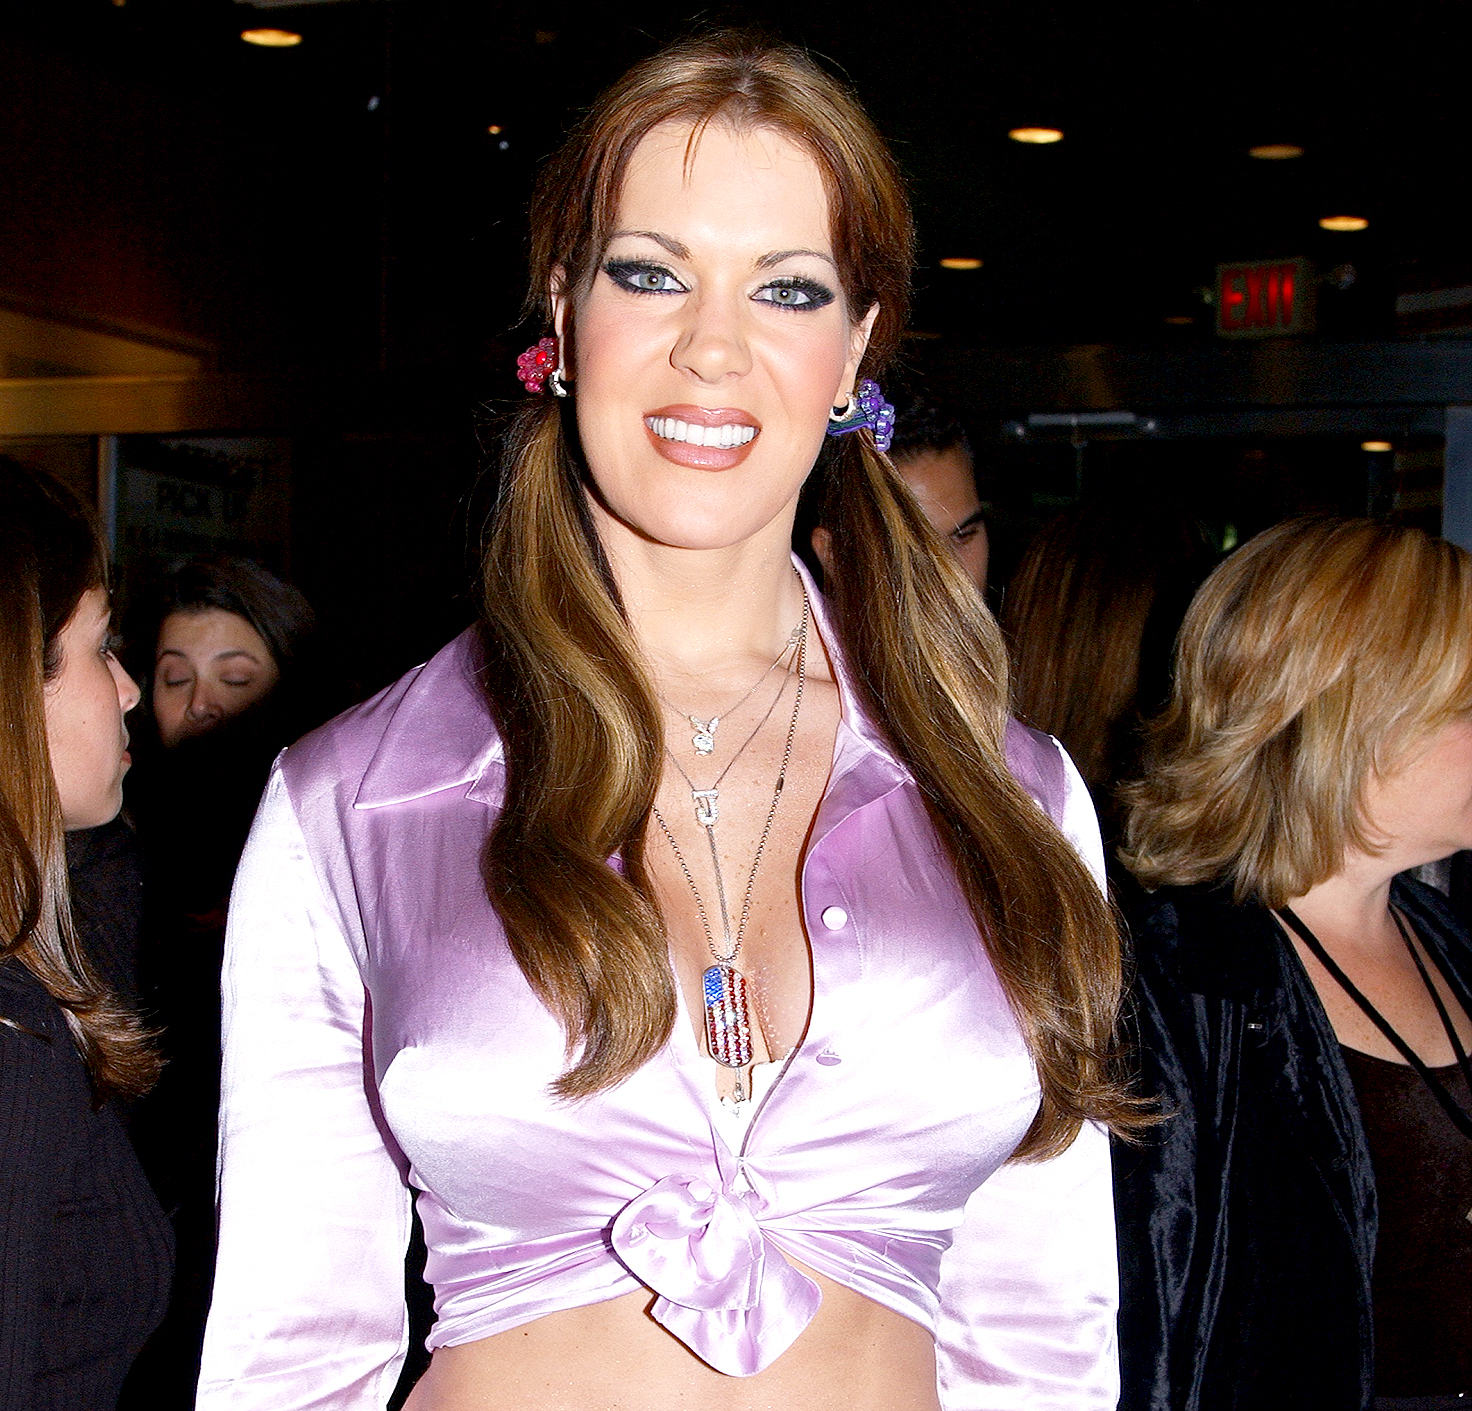 """Joanie Laurer, formerly known as """"Chyna"""" of the World Wrestling Federation, is on hand for the premiere of the new HBO documentary series """"Project Greenlight"""" at the Chelsea West Theaters on W. 23rd St. in 2001."""